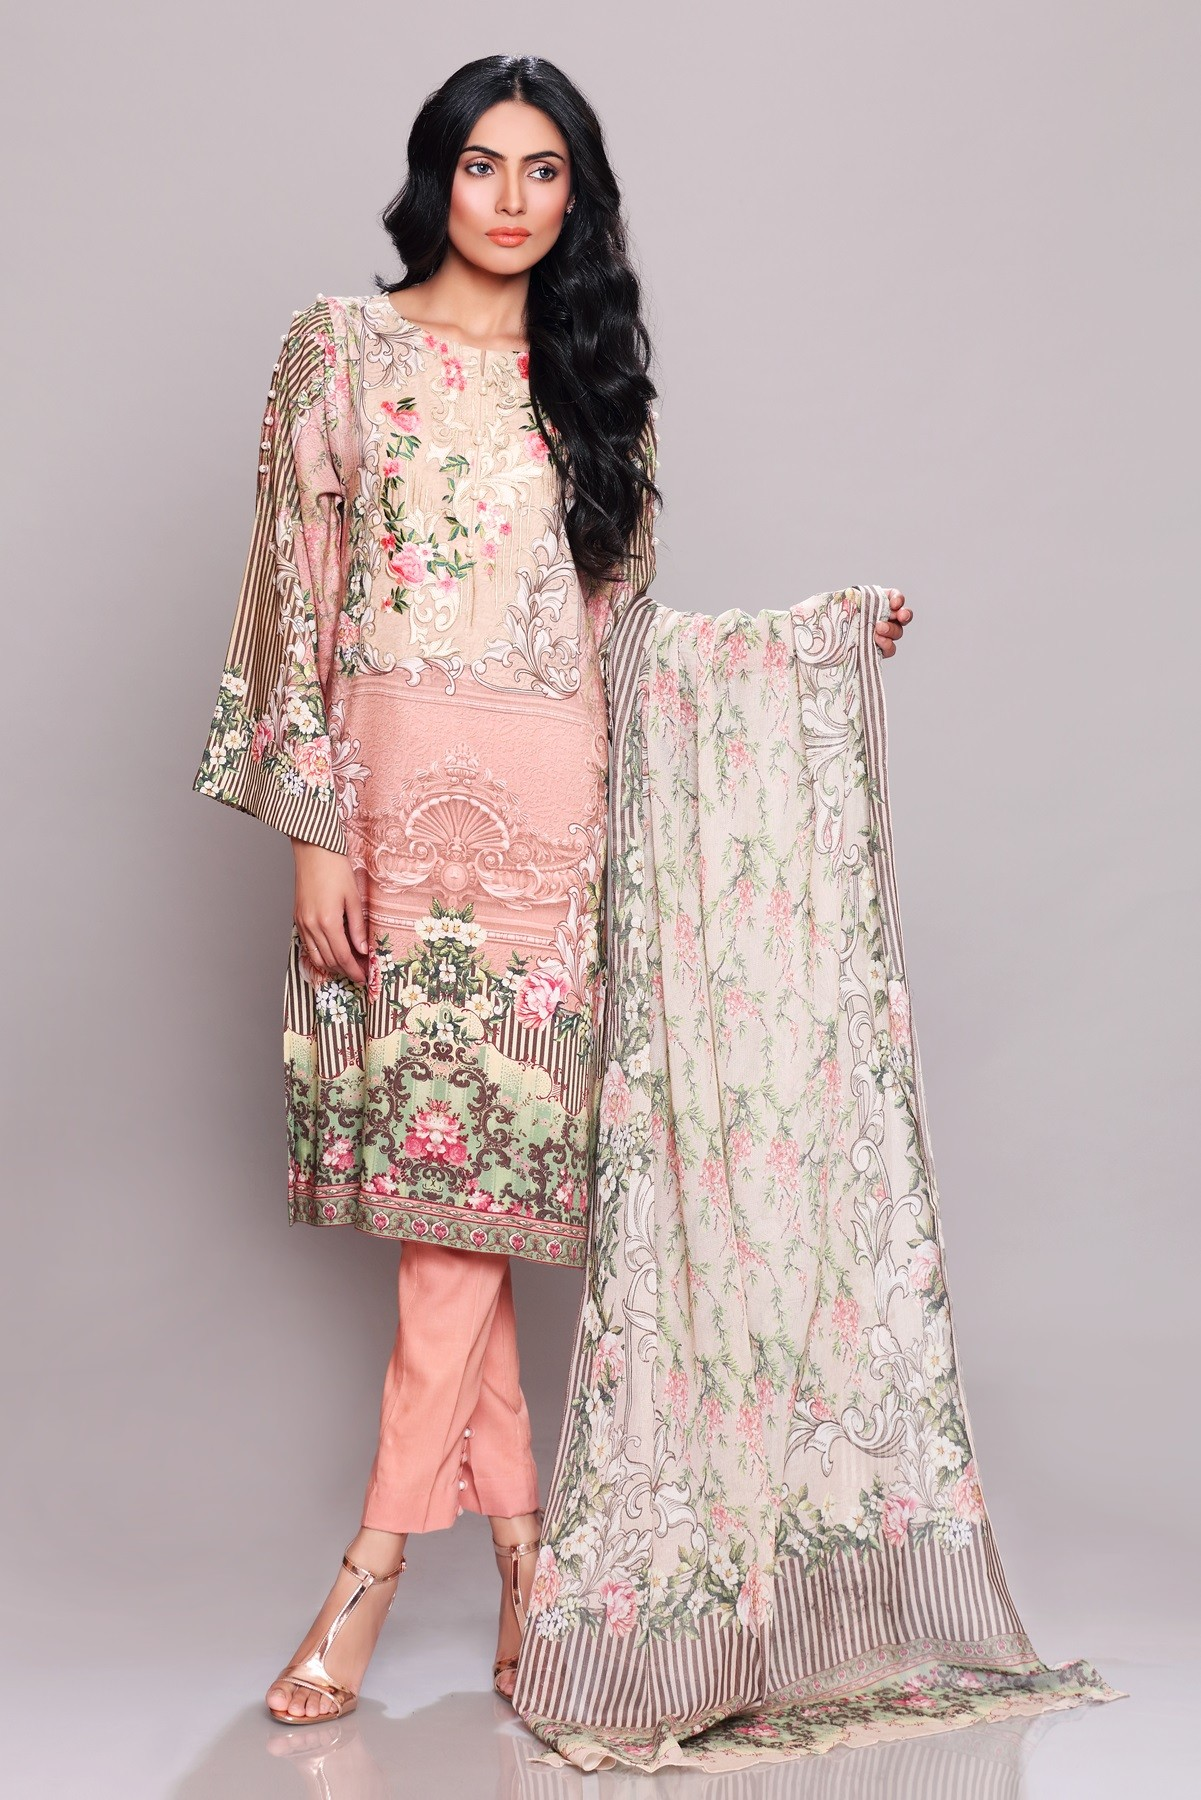 Fashion week Best mausummery women dresses collection for woman